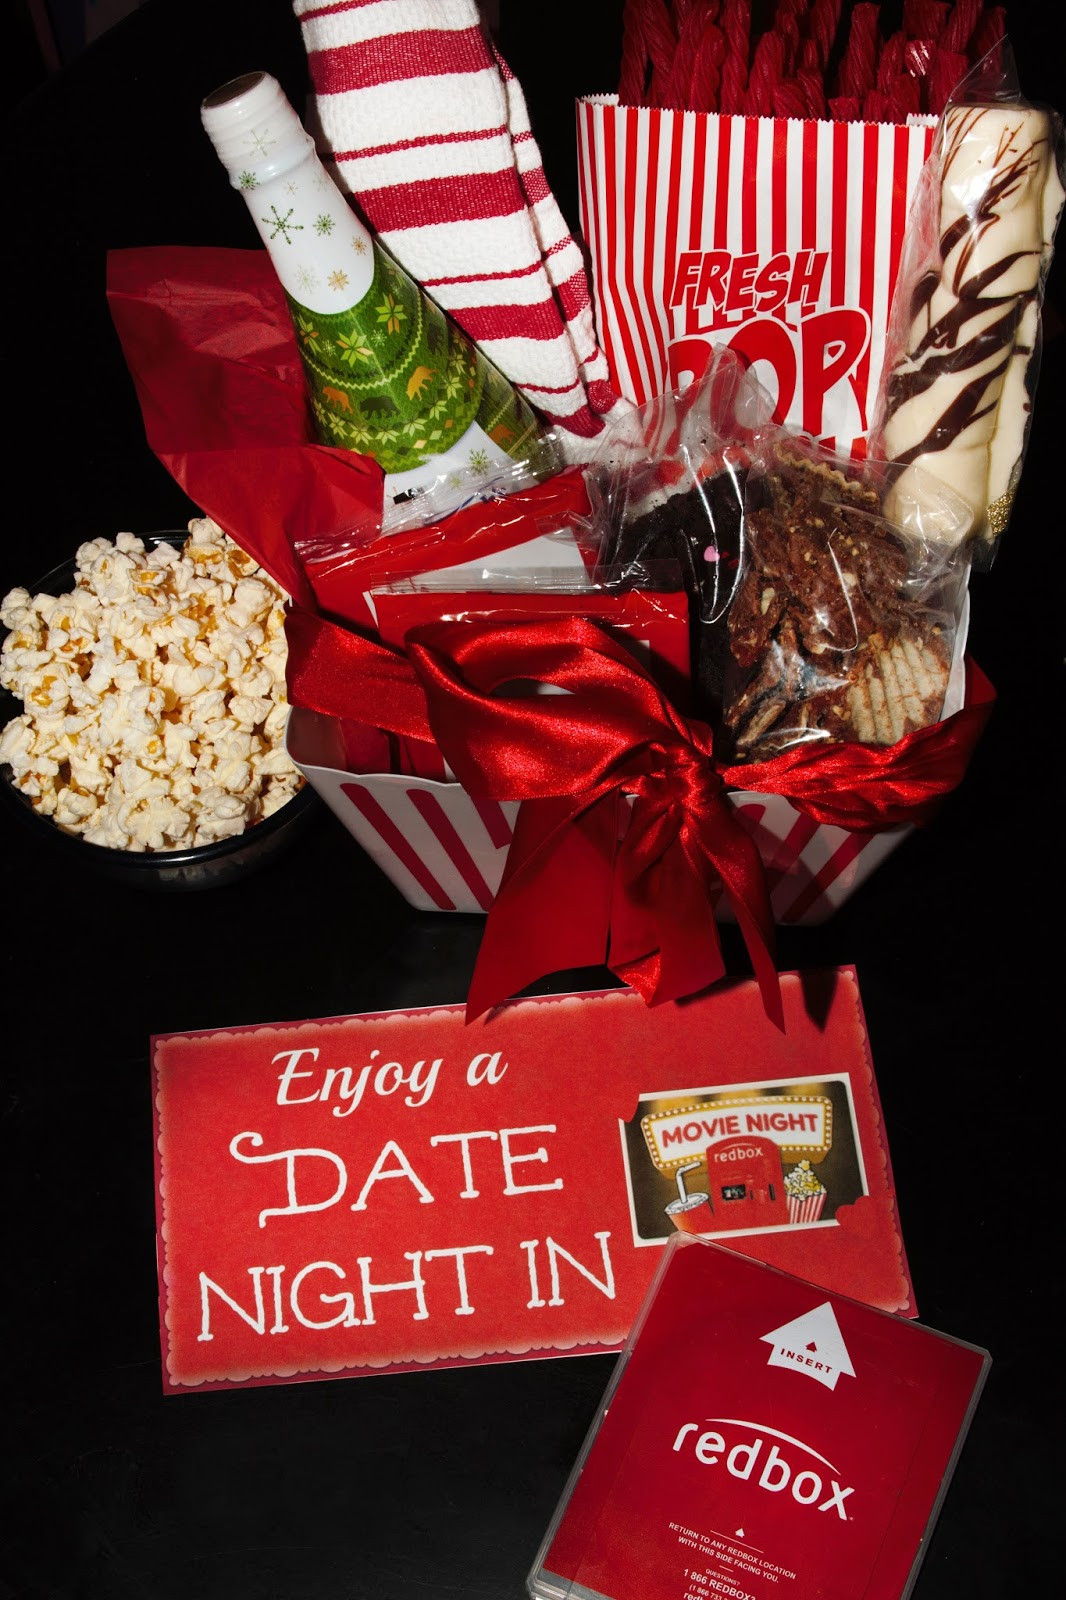 Best ideas about Movie Night Gift Basket Ideas . Save or Pin For the Love of Food DIY Date Night In Gift Basket with Now.